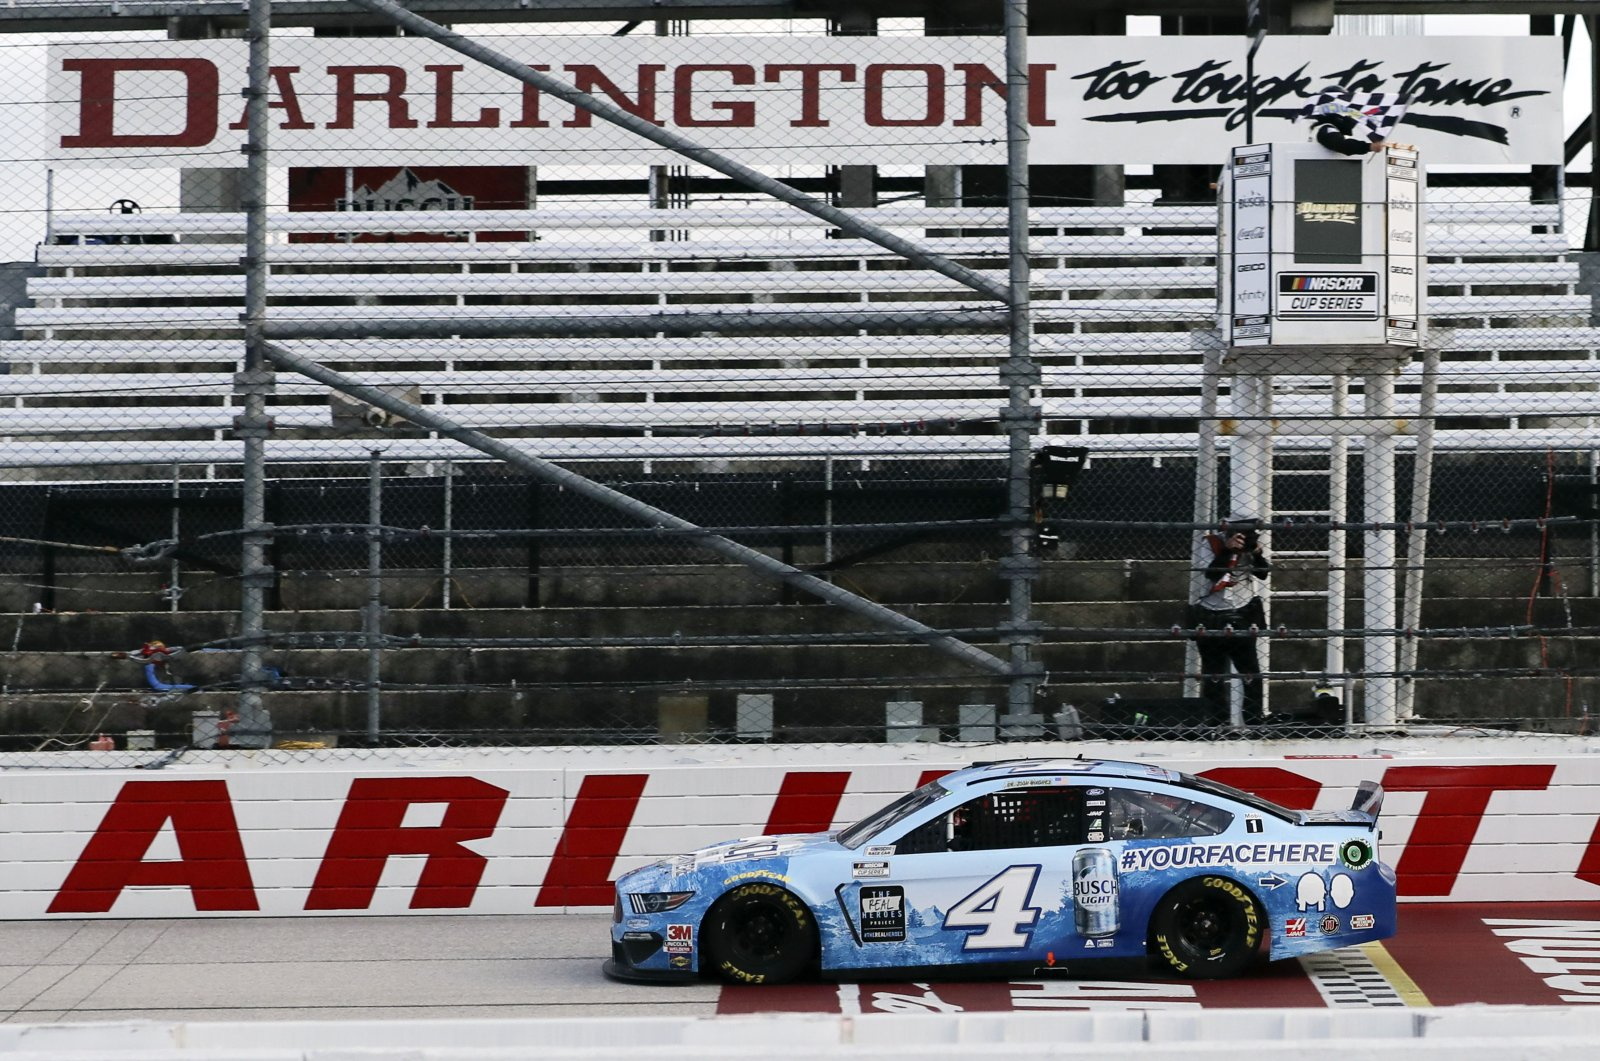 Kevin Harvick (4) crosses the finish line to win the NASCAR Cup Series auto race, Darlington, S.C., U.S., May 17, 2020. (AP Photo)